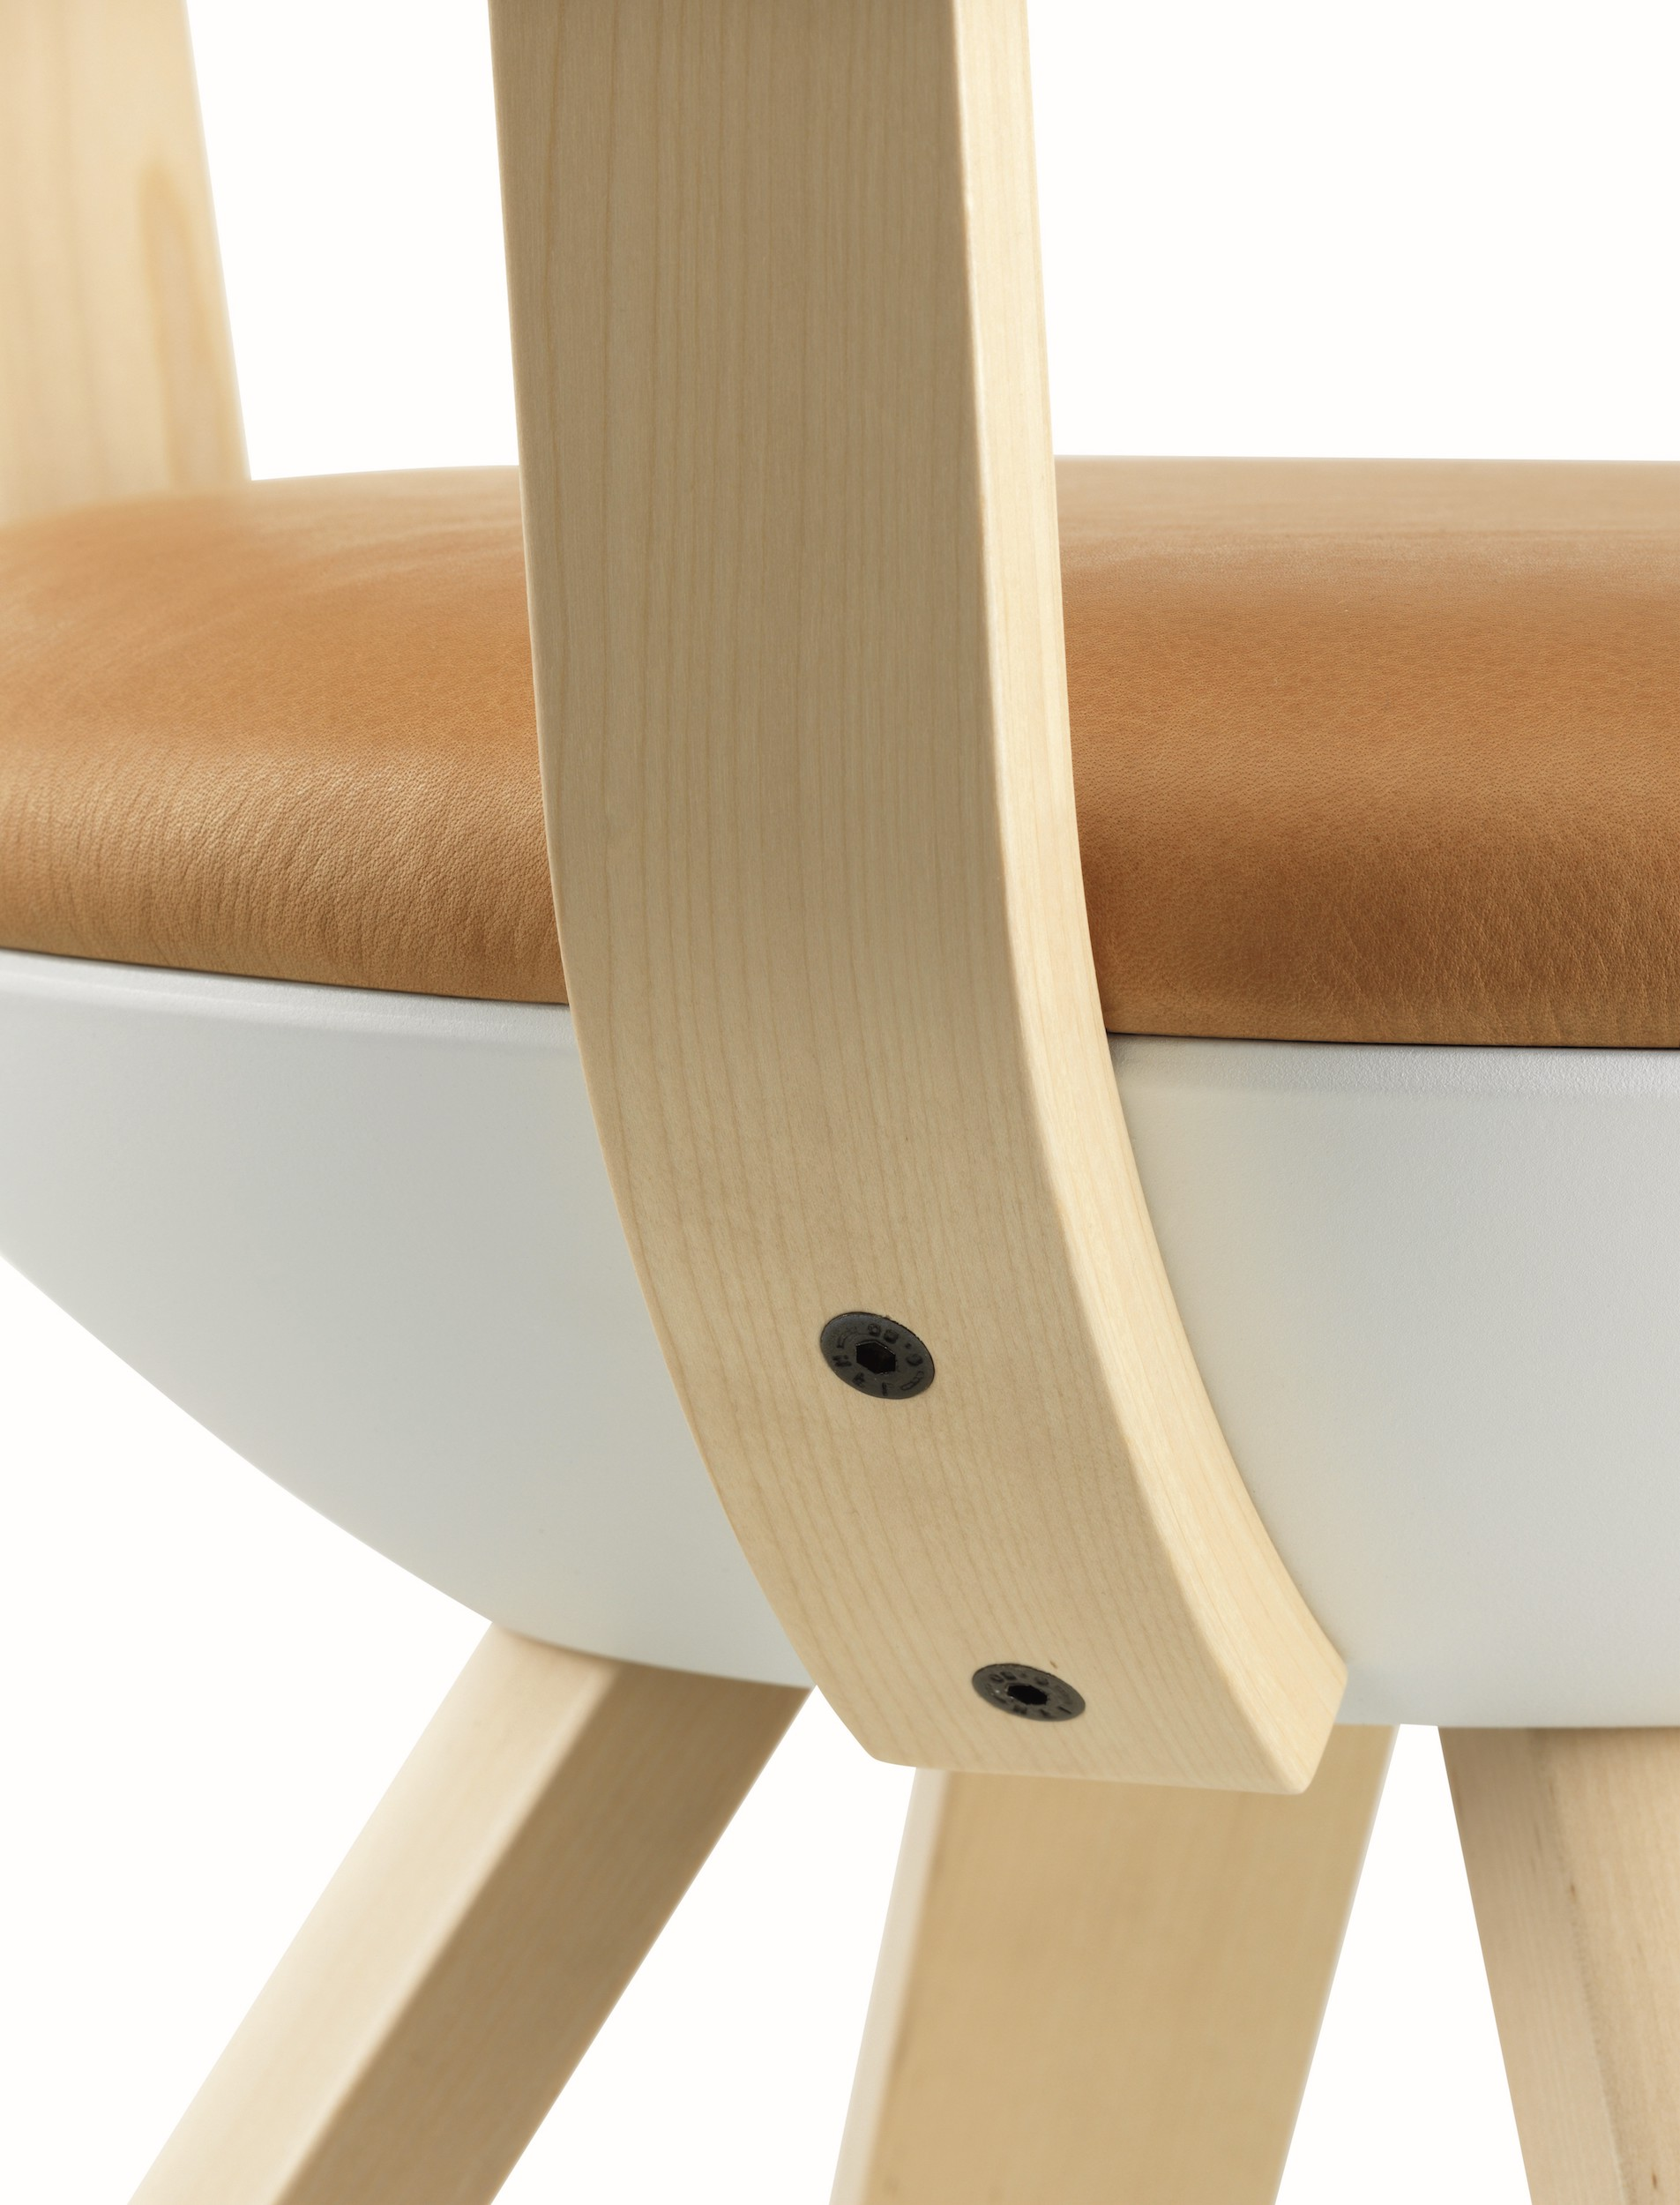 Artek rival chair design konstantin grcic for Scandic design